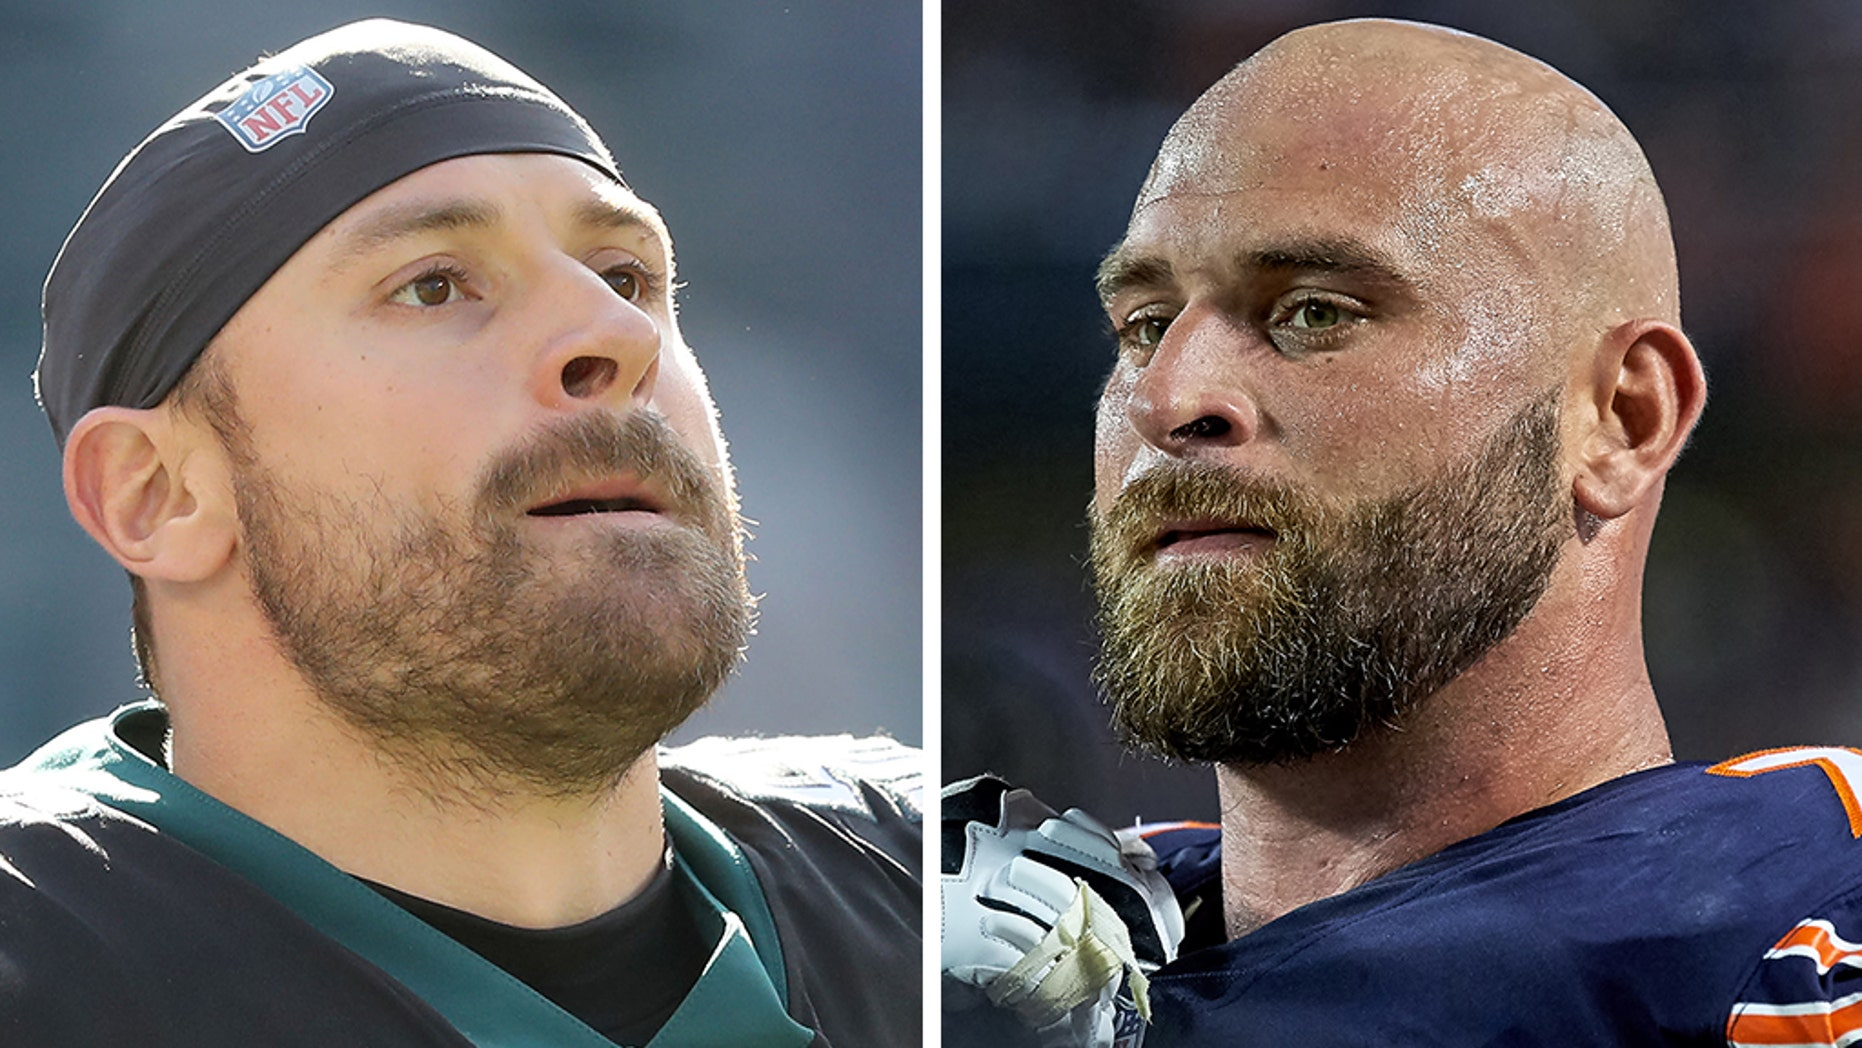 Eagles defensive end Chris Long vs. Bears guard Kyle Long: There can only be one. Howie Long's sons will face off Sunday on the field on his 59th birthday. (Getty, File)